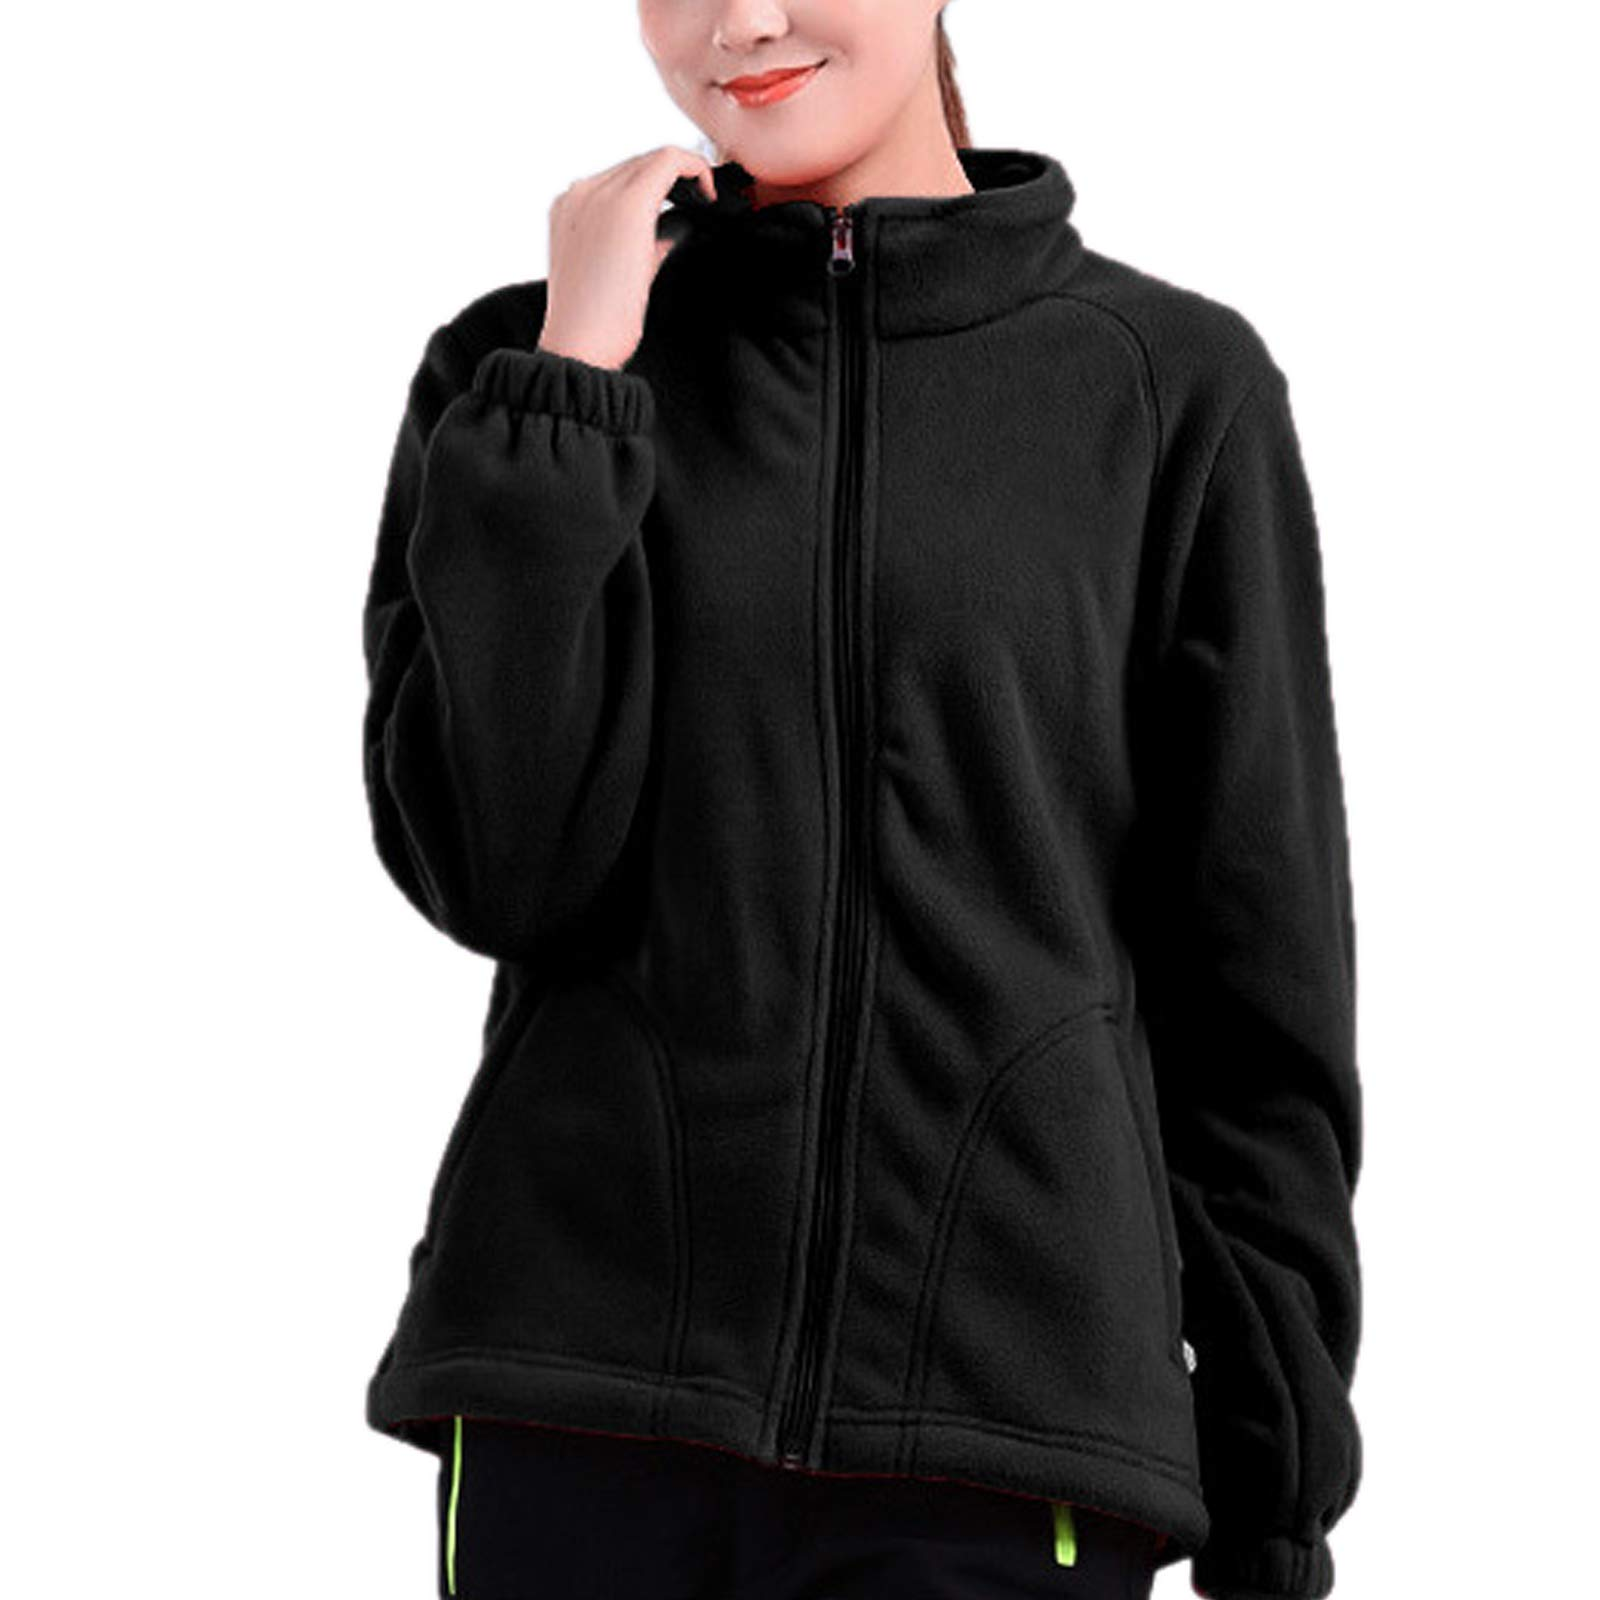 ZumZup Womens Fleece Jacket Full Zip Stand Collar Sportwear Top Outwear Black2 Bust 42.5''(Asie 2XL) by ZumZup